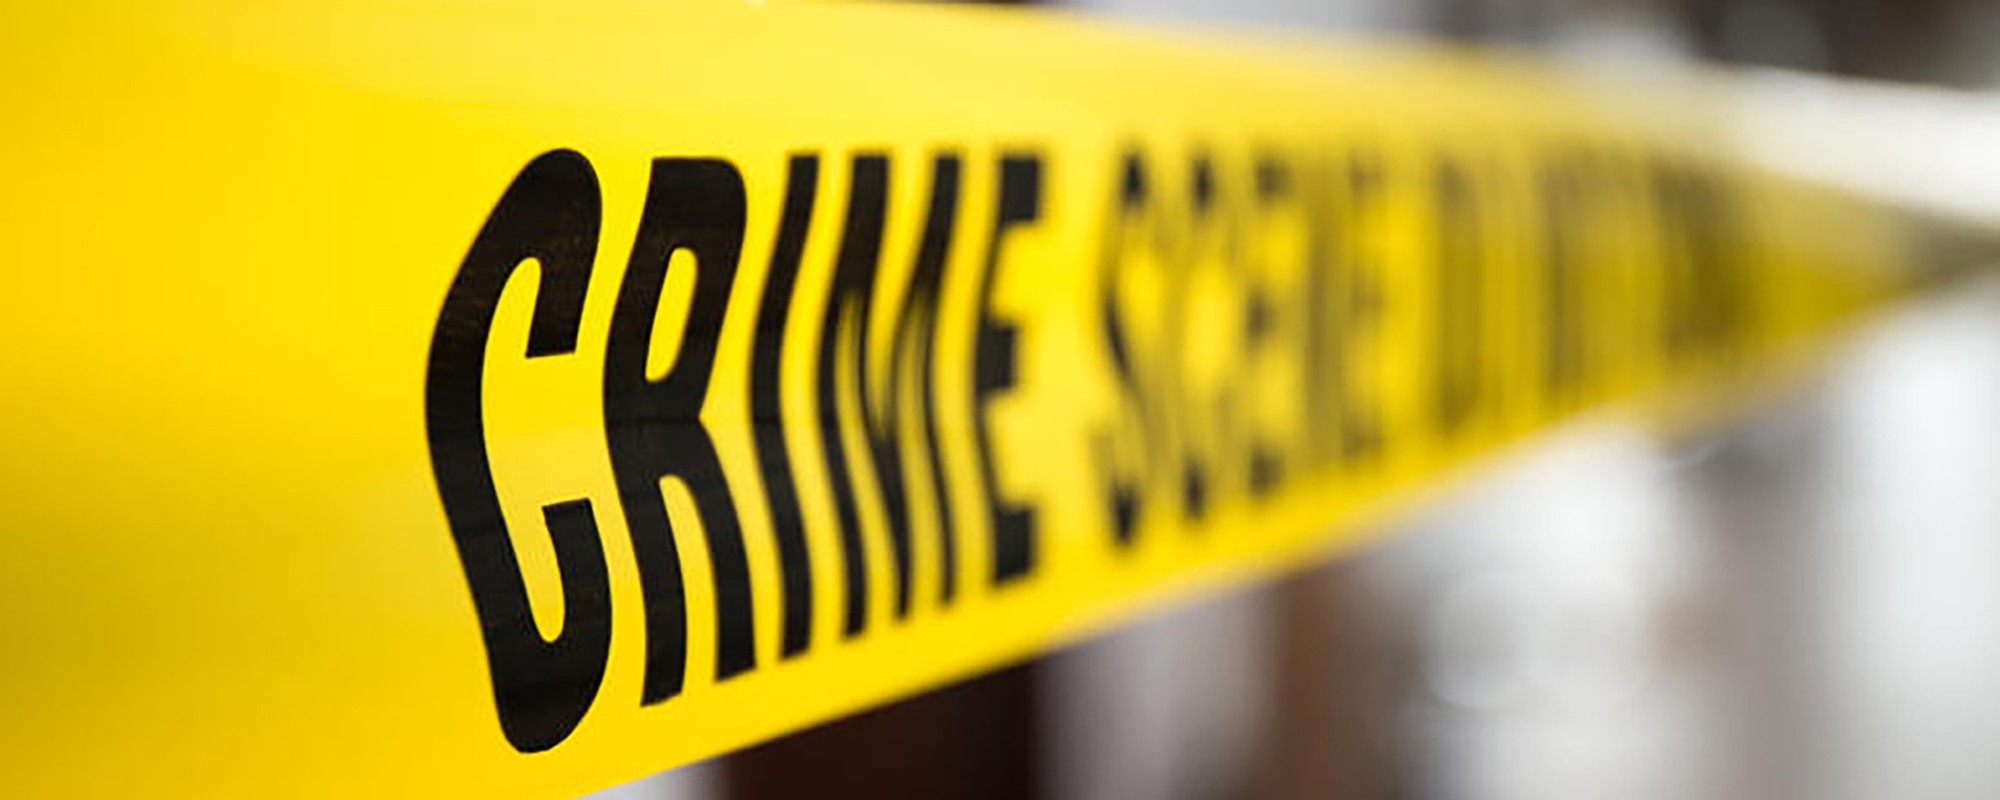 dealing with trauma & crime scene cleanup NJ